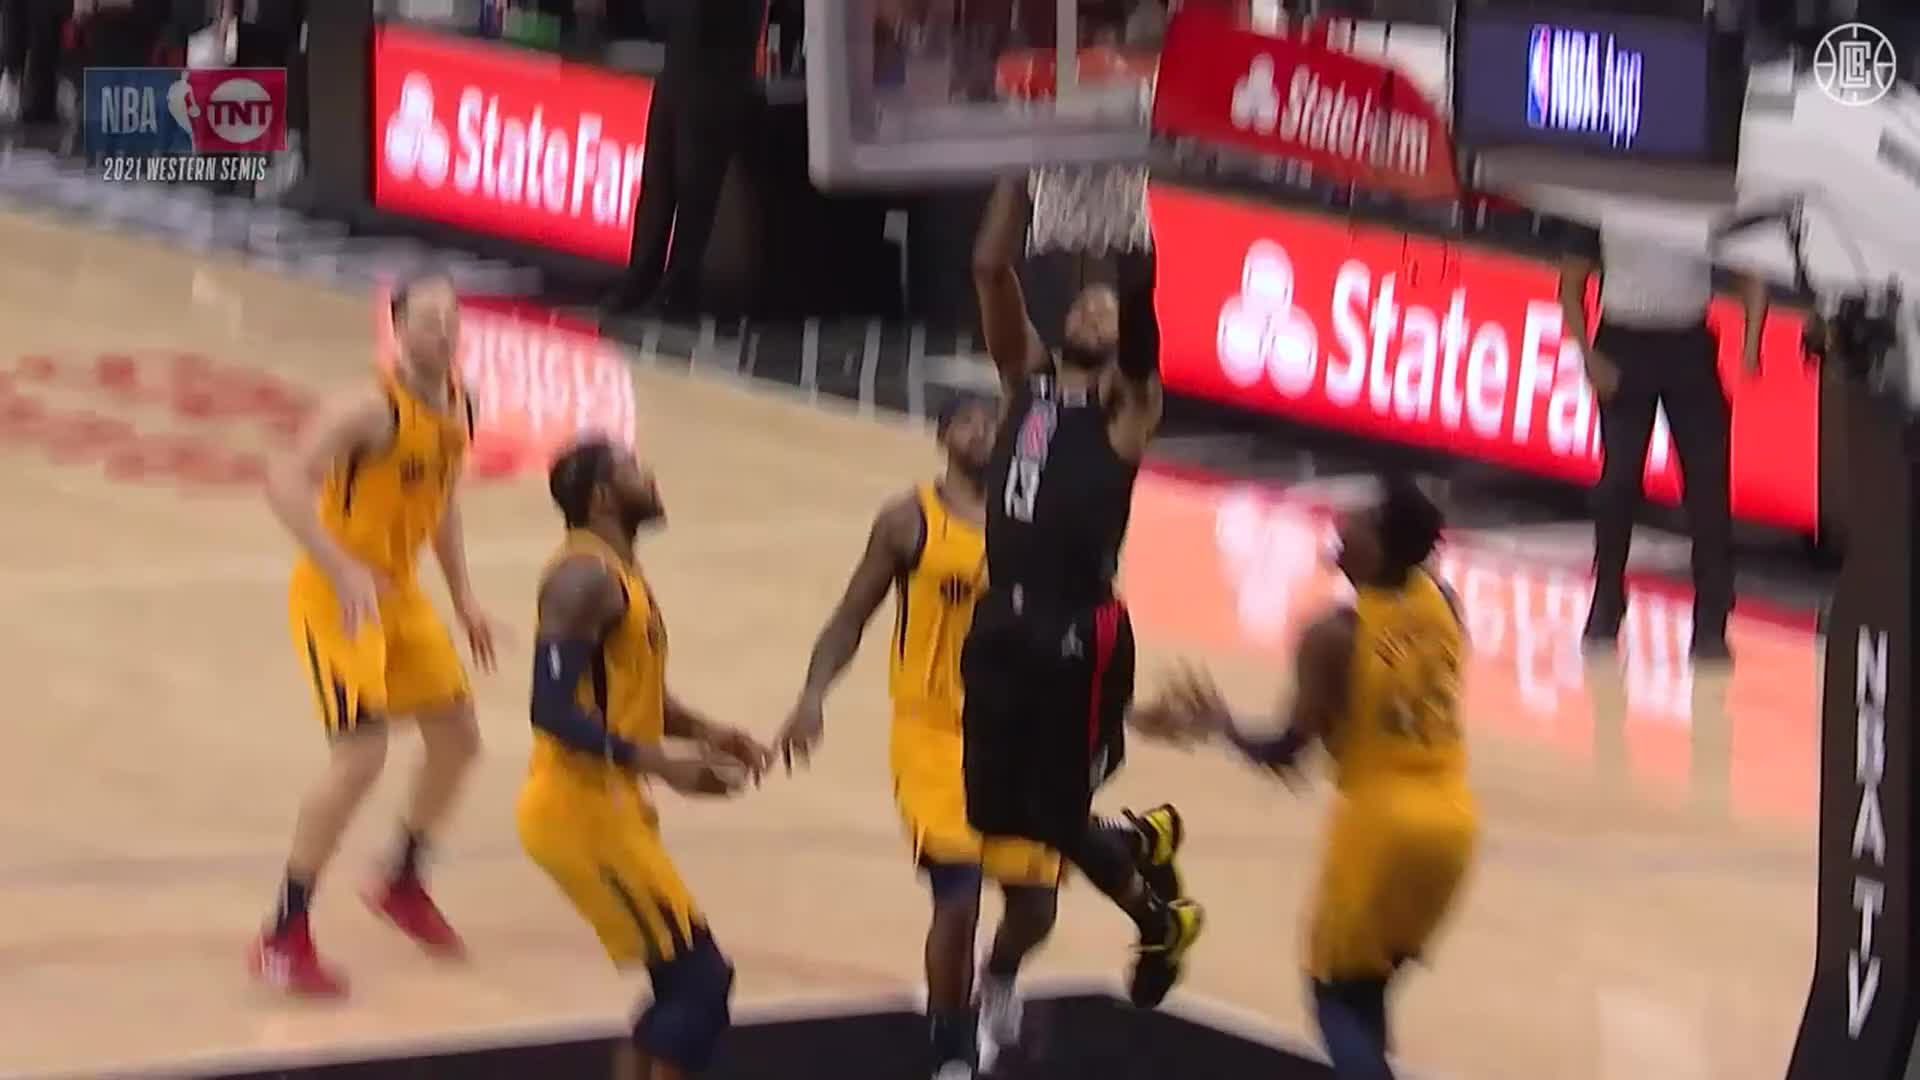 Paul George Dunk And-1 in 2nd Quarter vs Jazz | (6.14.21)